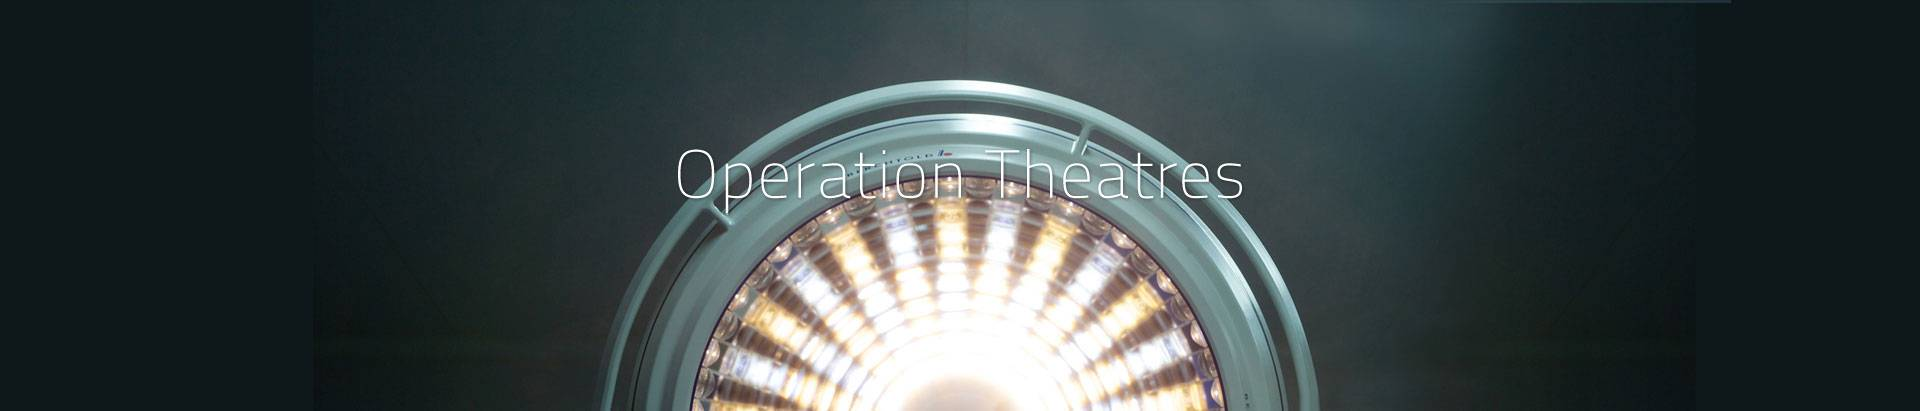 Slider-operation-theatre-01